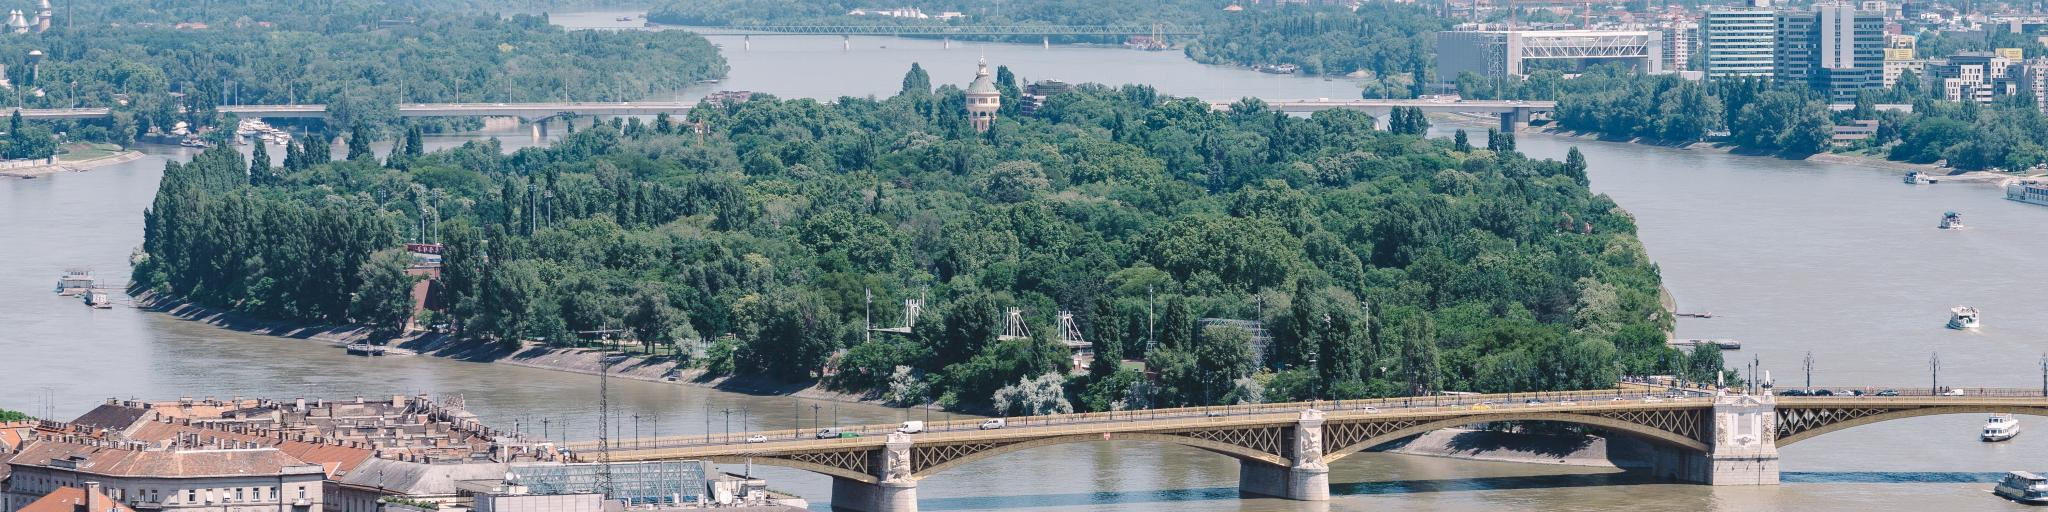 The verdant Margaret Island sits in the Danube River between Buda and Pest